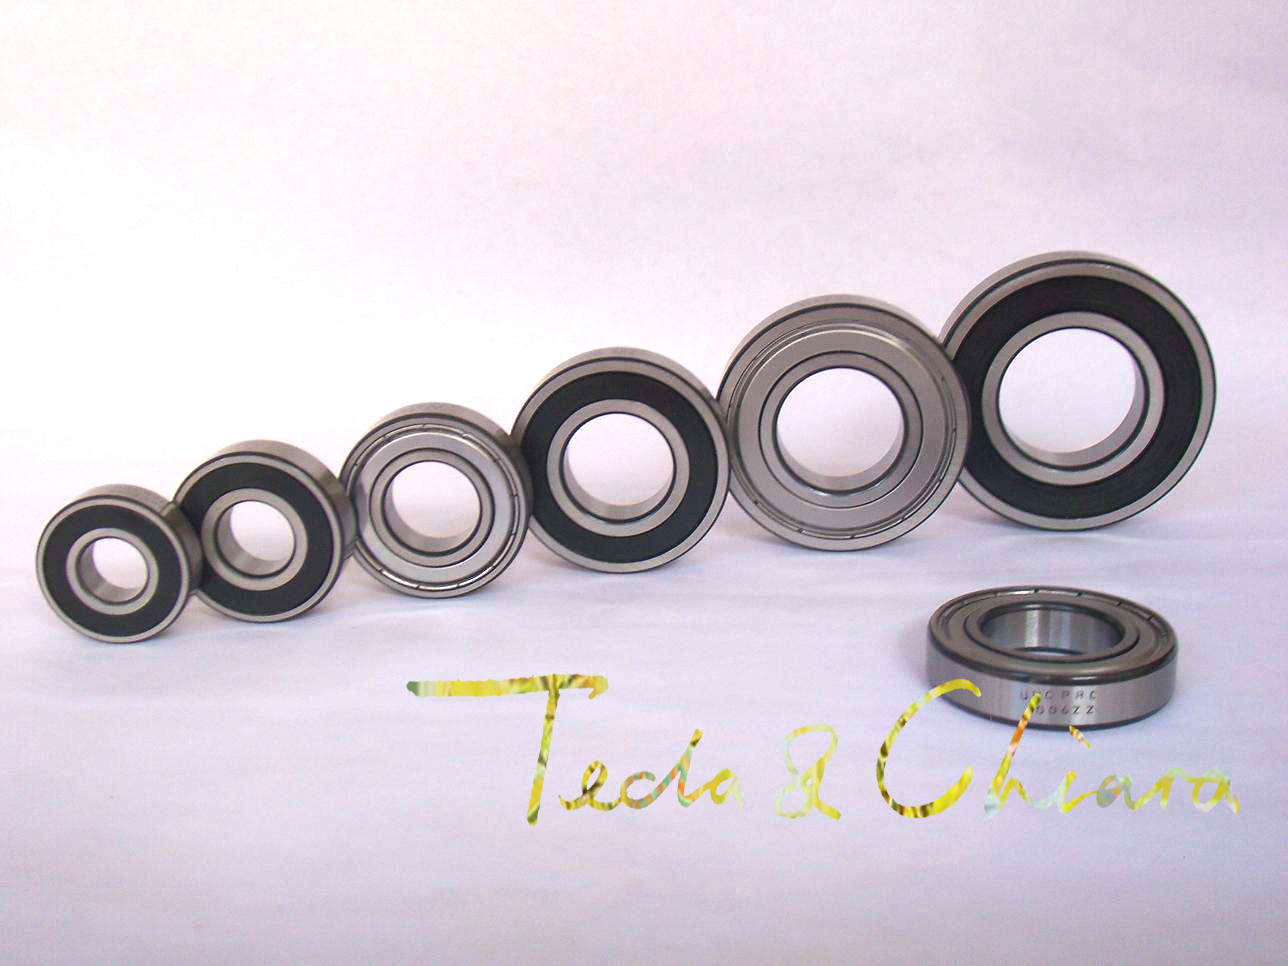 6204 6204ZZ 6204RS 6204-2Z 6204Z 6204-2RS ZZ RS RZ 2RZ Deep Groove Ball Bearings 20 x 47 x 14mm High Quality gcr15 6328 zz or 6328 2rs 140x300x62mm high precision deep groove ball bearings abec 1 p0